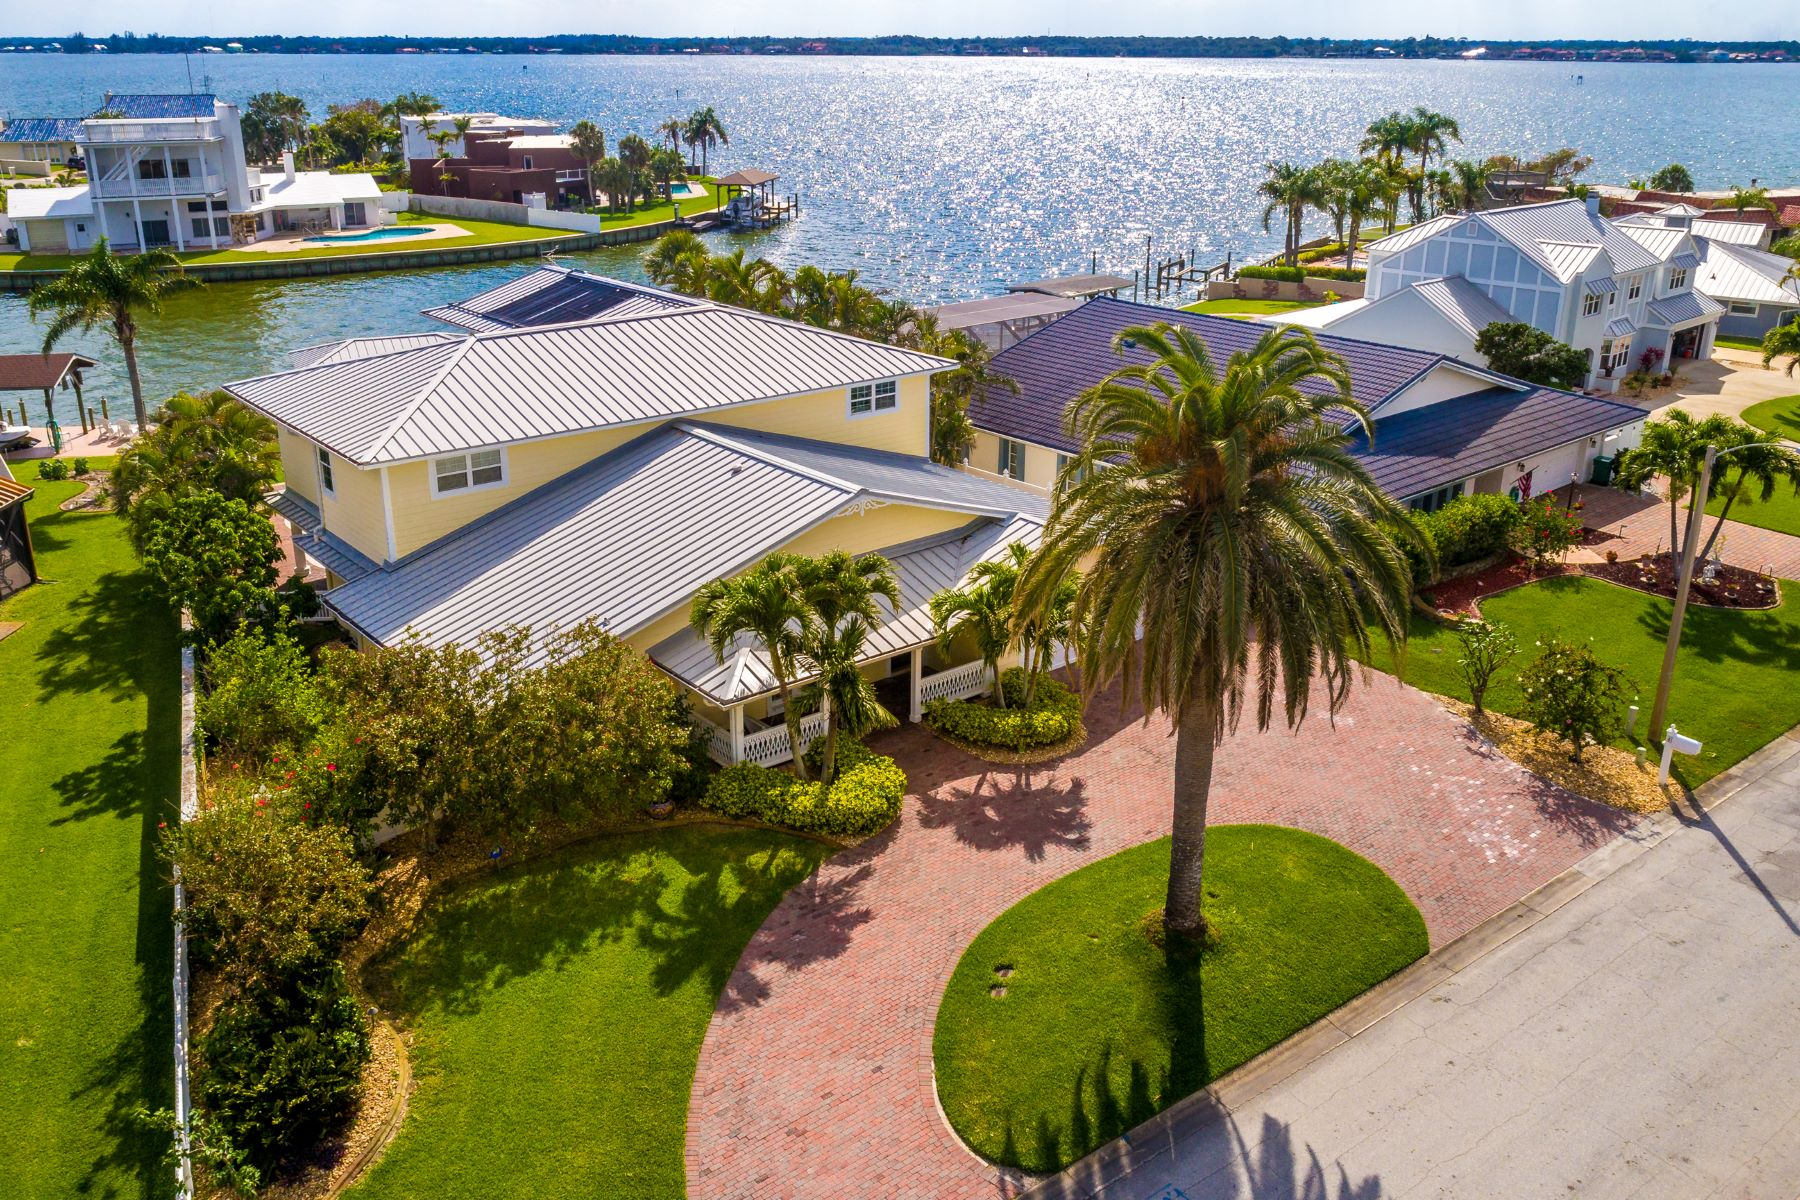 Spectacular Waterfront Home 4 Willow Green Dr. Cocoa Beach, Florida 32931 Usa